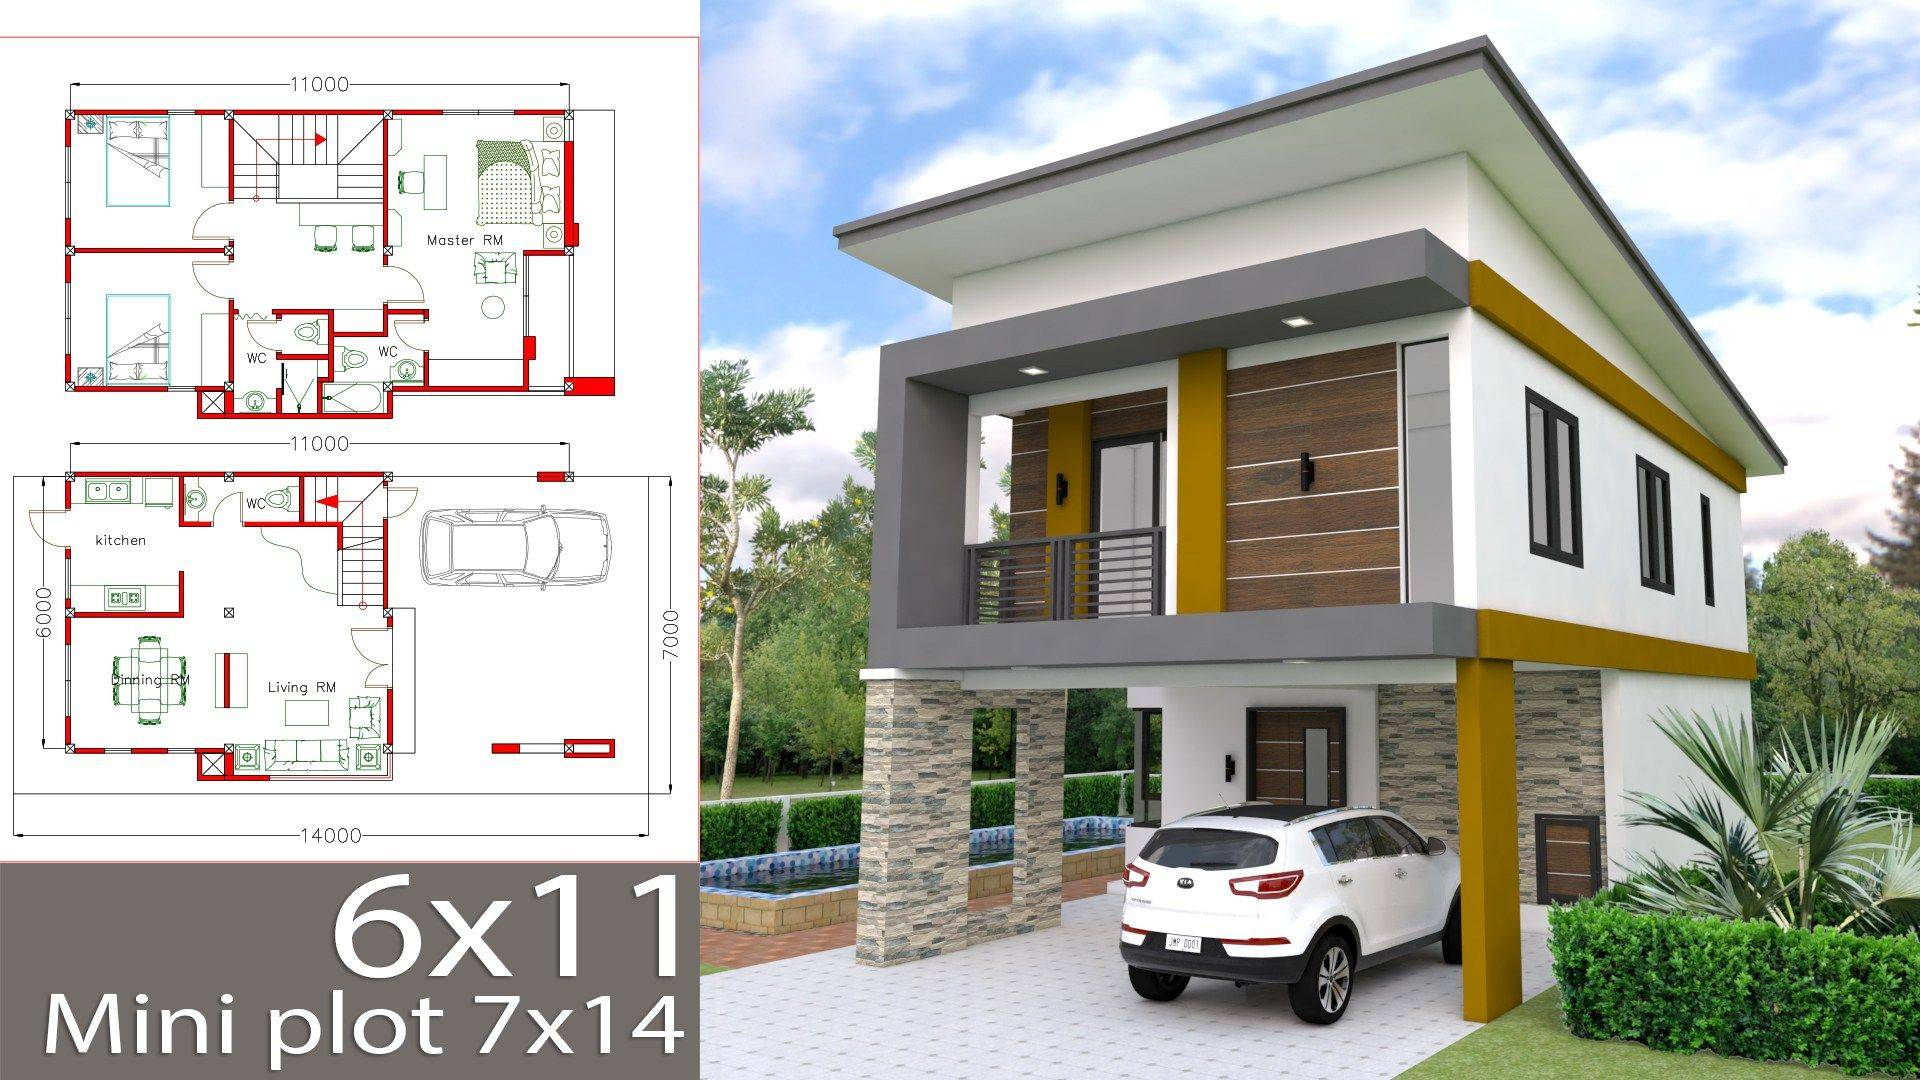 Zen Home Design Elegant Small Home Design Plan 6x11m with 3 Bedrooms